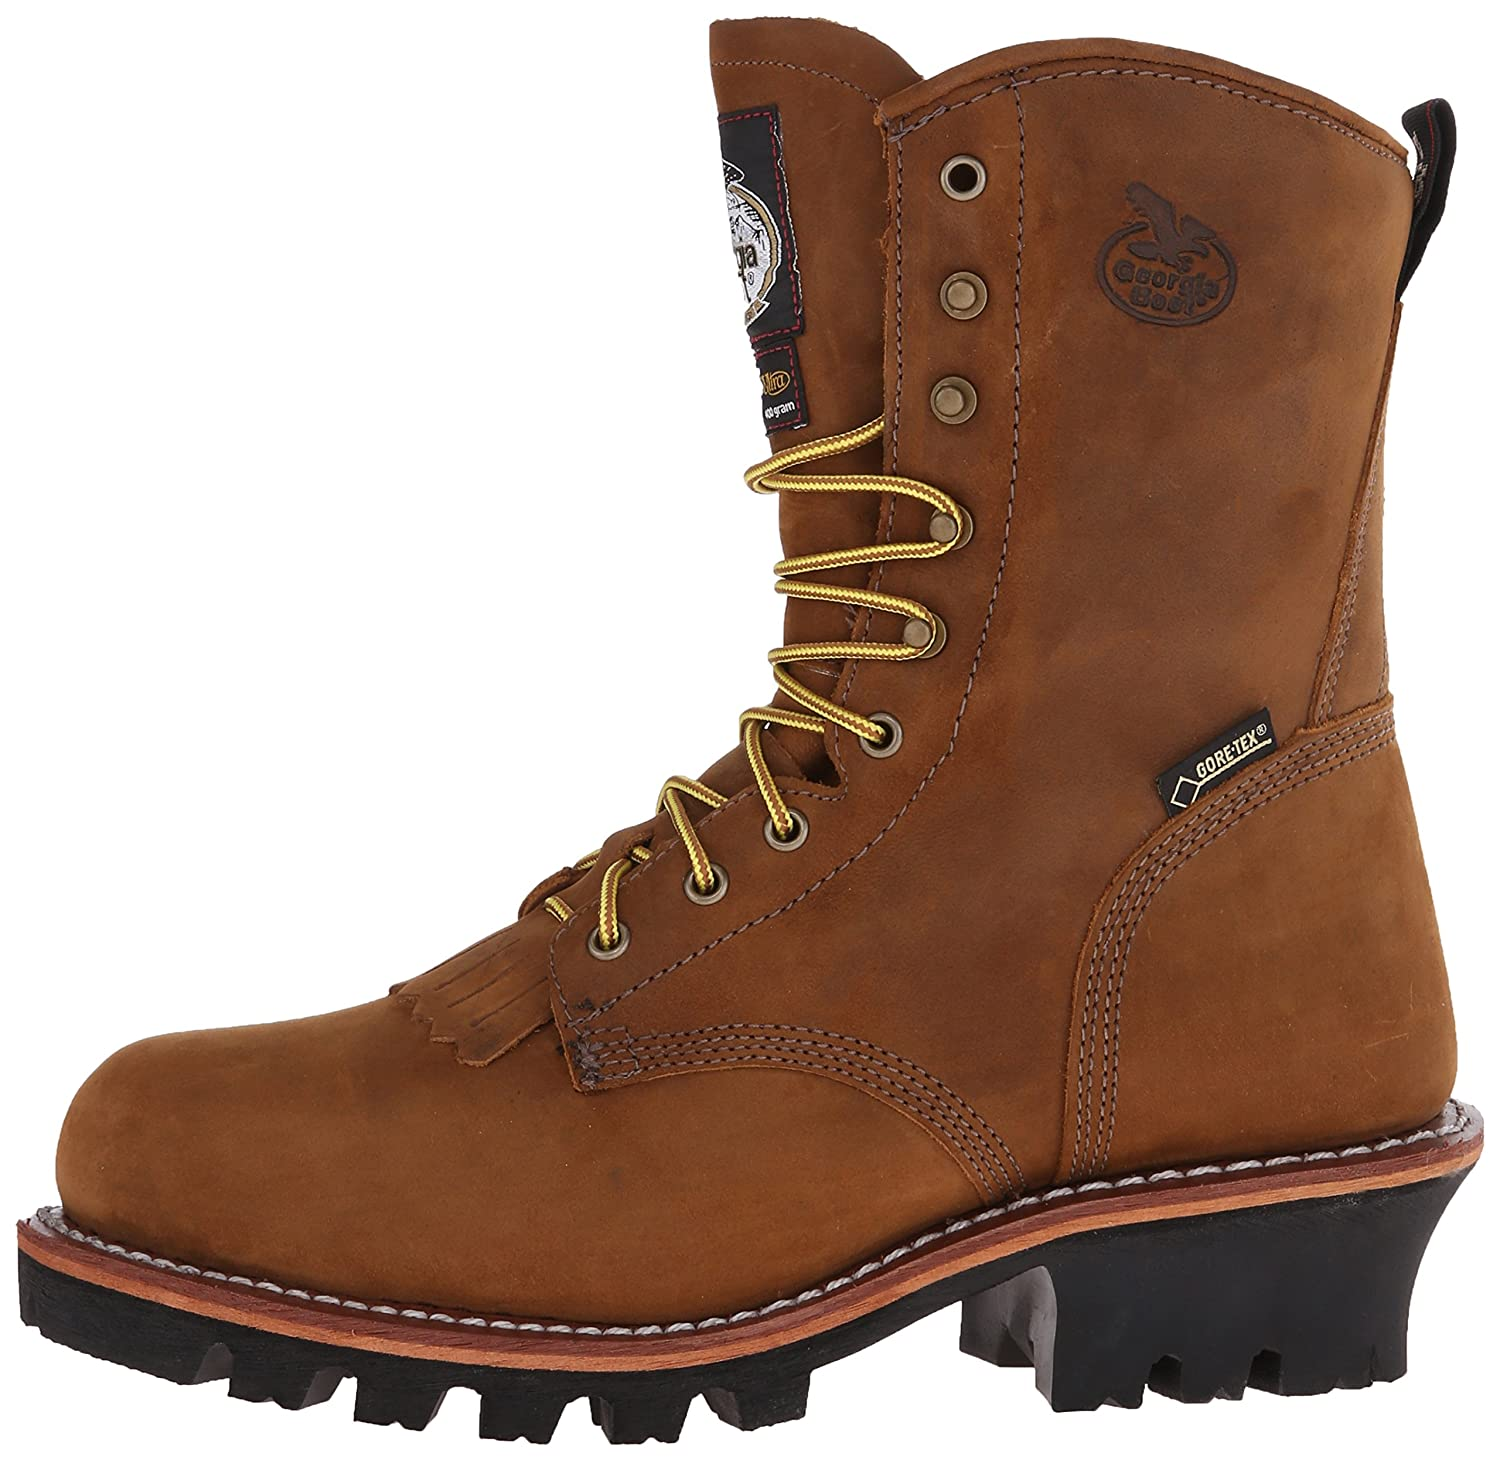 6f1cdfb97b4 Amazon.com | Georgia Boot Steel Toe Gore-TEX Waterproof Insulated ...